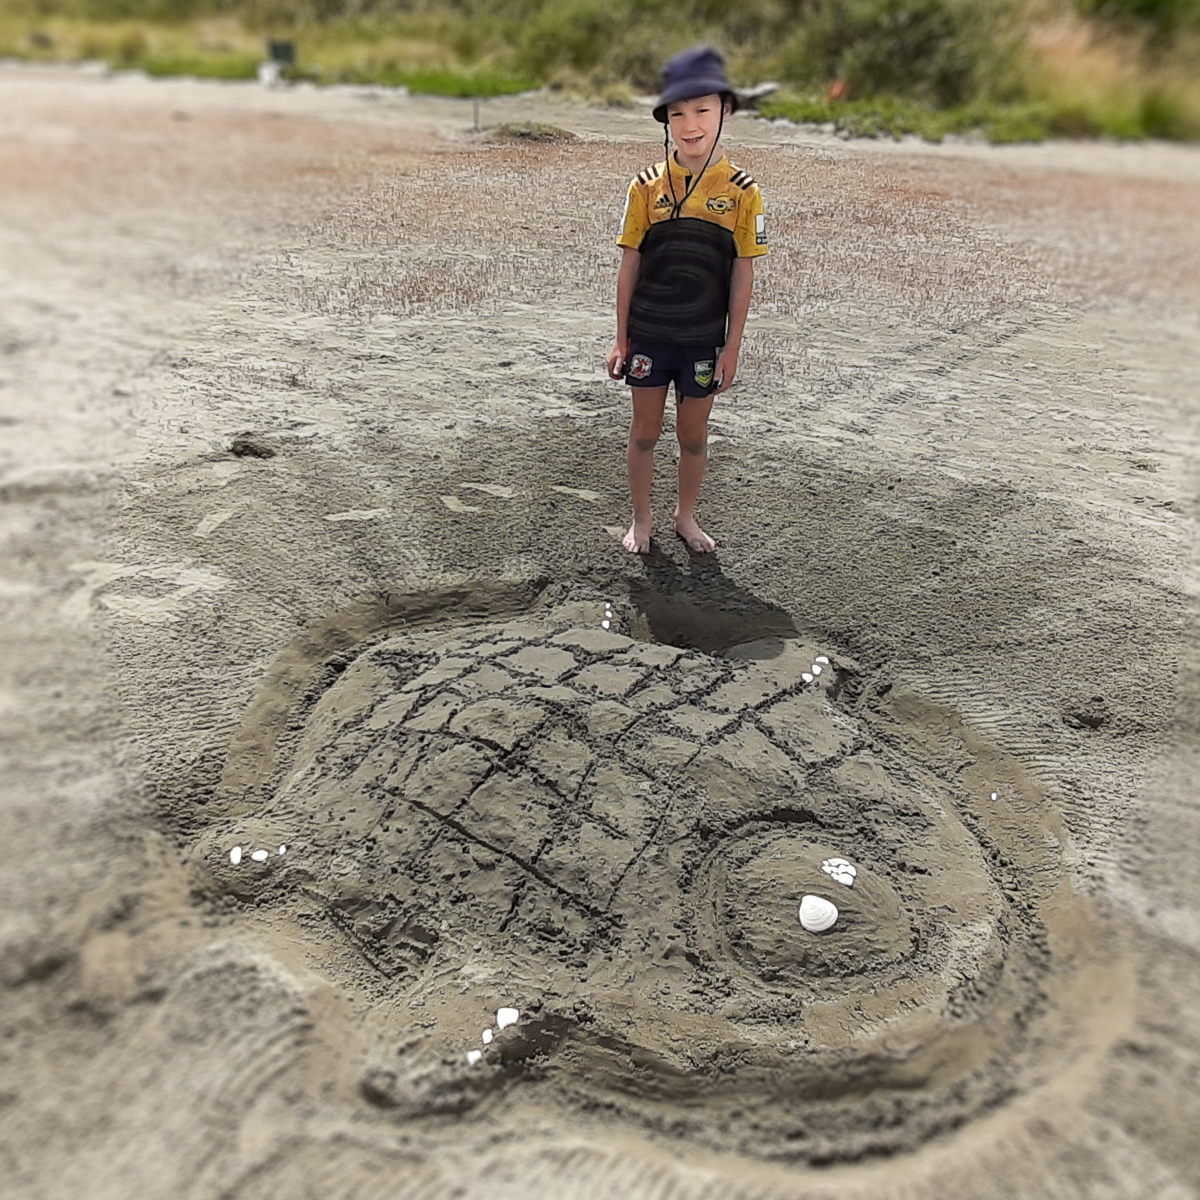 Child beside sand turtle.